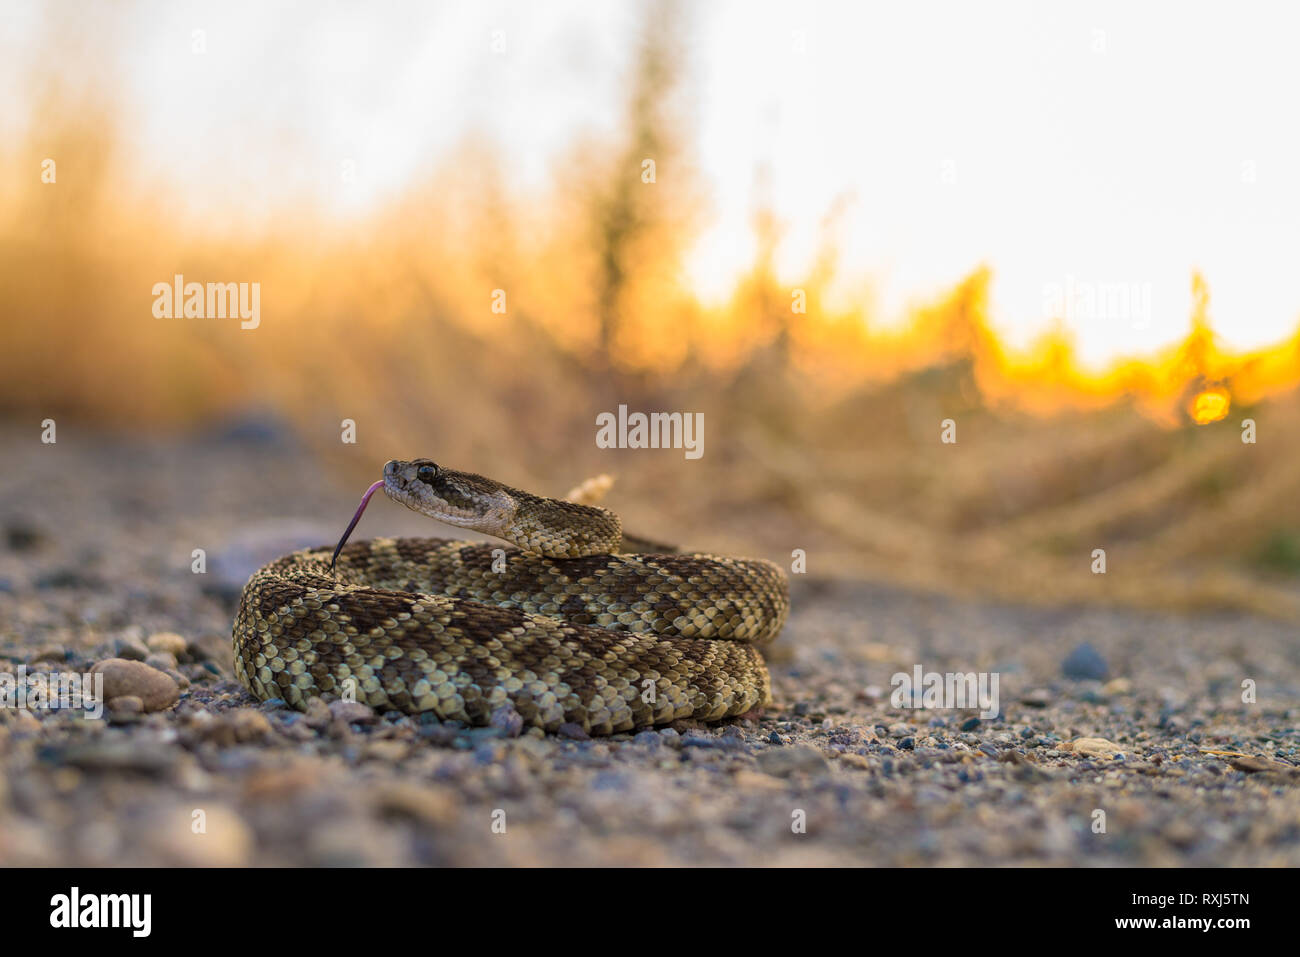 A large Northern Pacific Rattlesnake curiously and defensively poses and raises his head to watch the photographer. - Stock Image